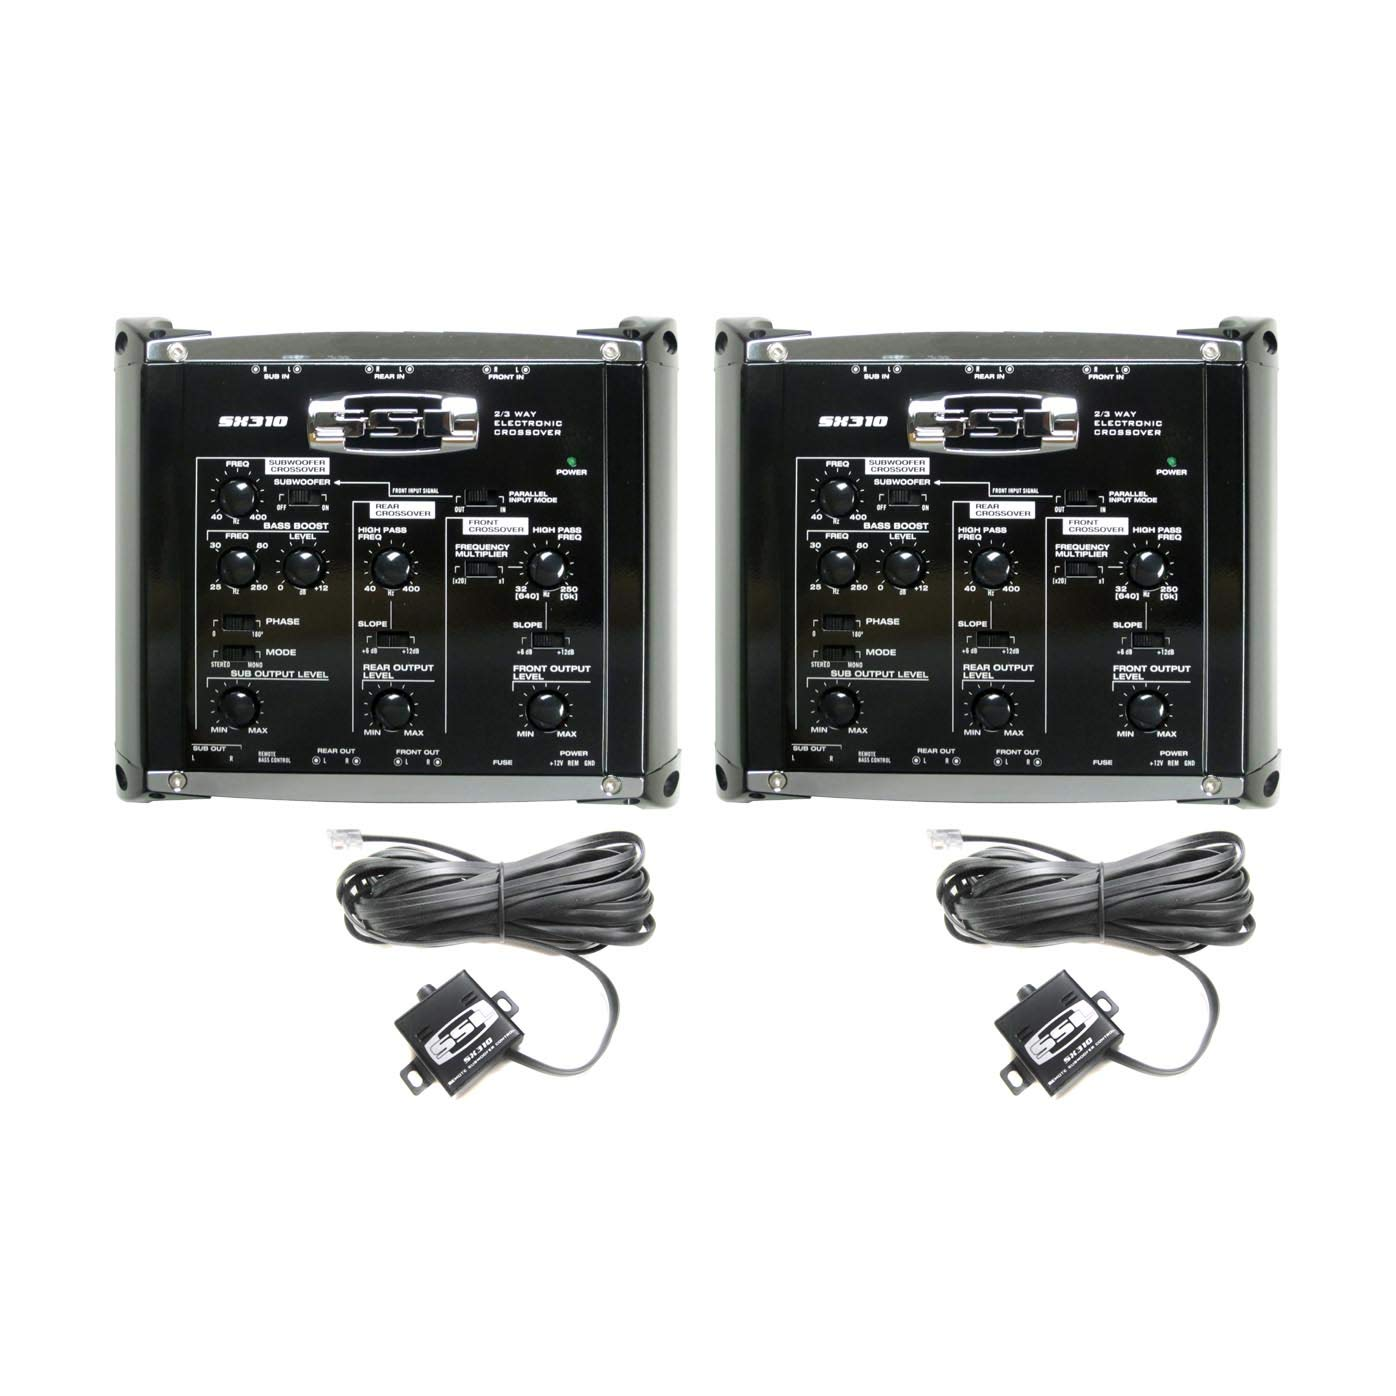 Soundstorm SX310 2/3 Way Electronic Crossover Car Bass Audio w/Remote (2 Pack) by Sound Storm Laboratories